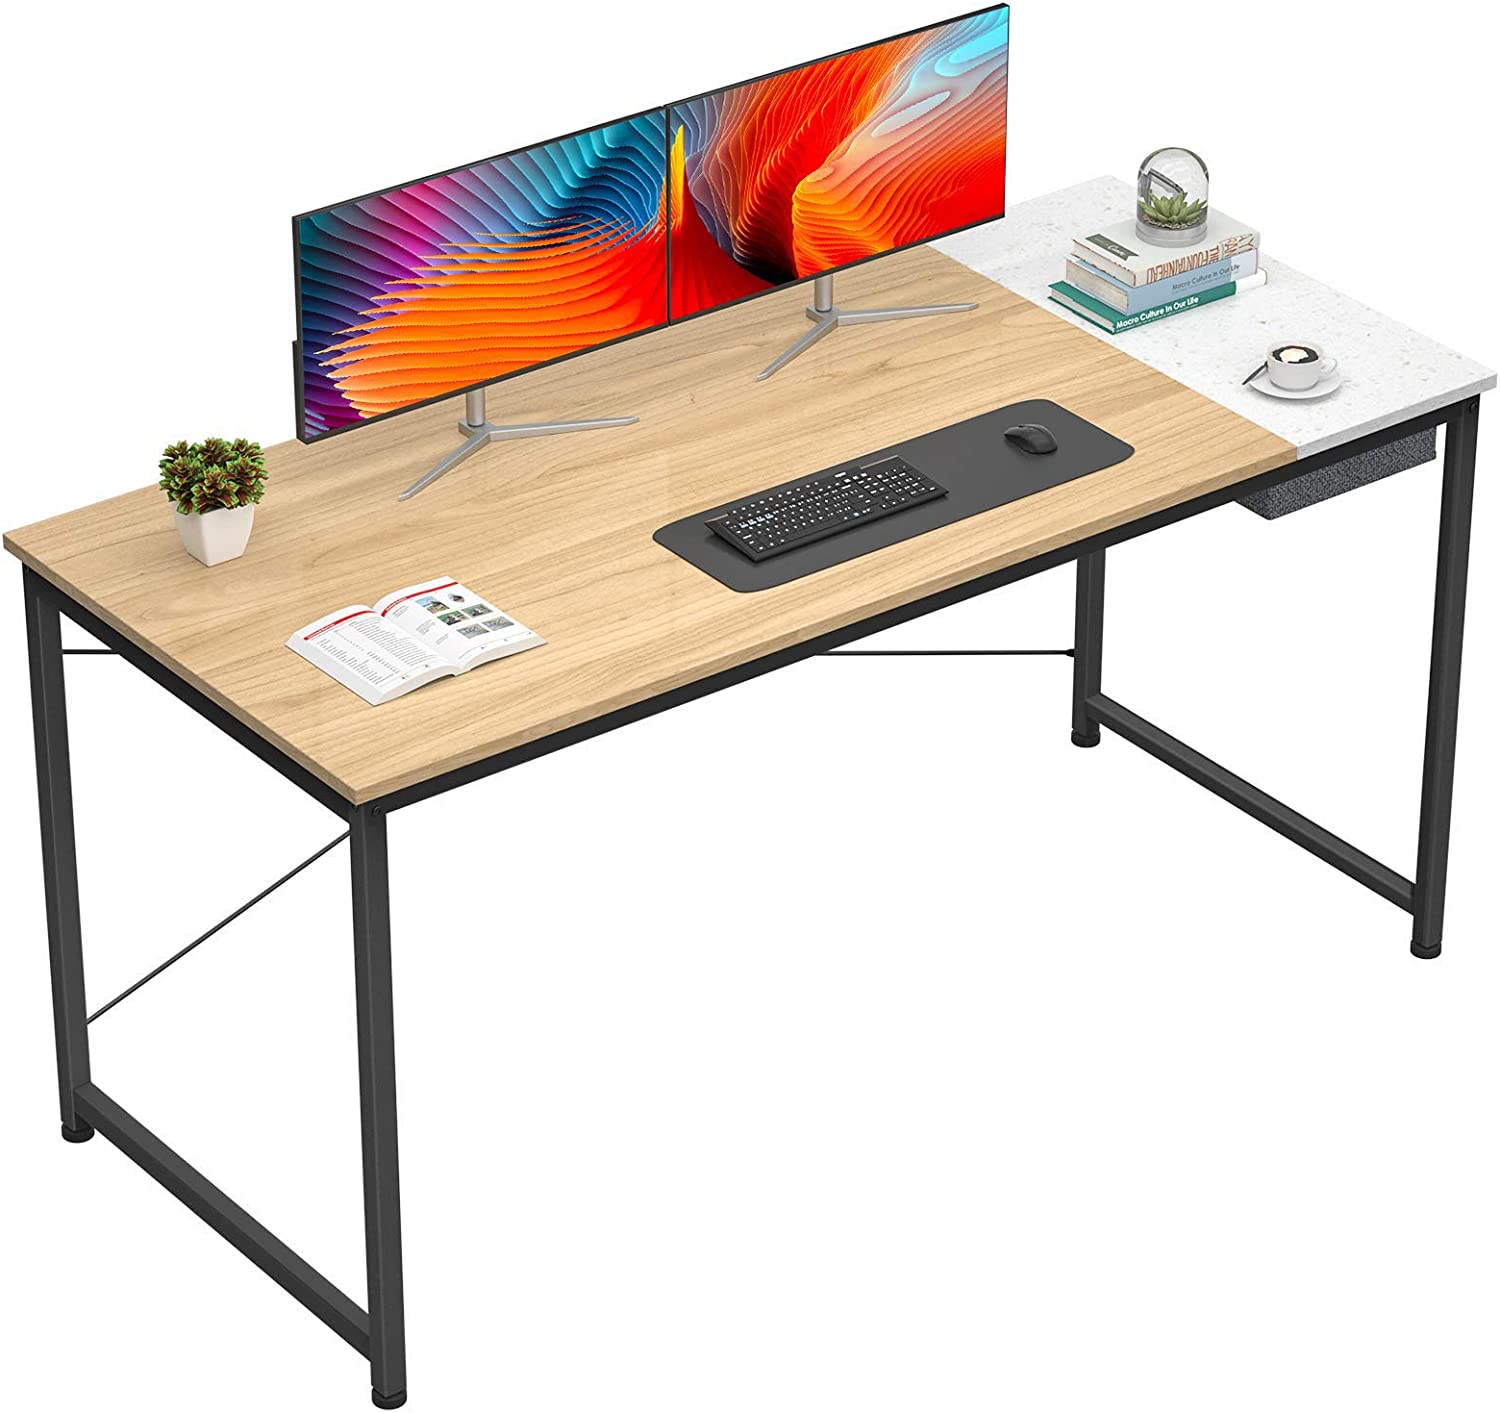 Foxemart Computer Desk, 55 Inch Study Writing Desk for Home Office Workstation, Modern Simple Style Laptop Table with Storage Bag/Drawer, Natural Terrazzo